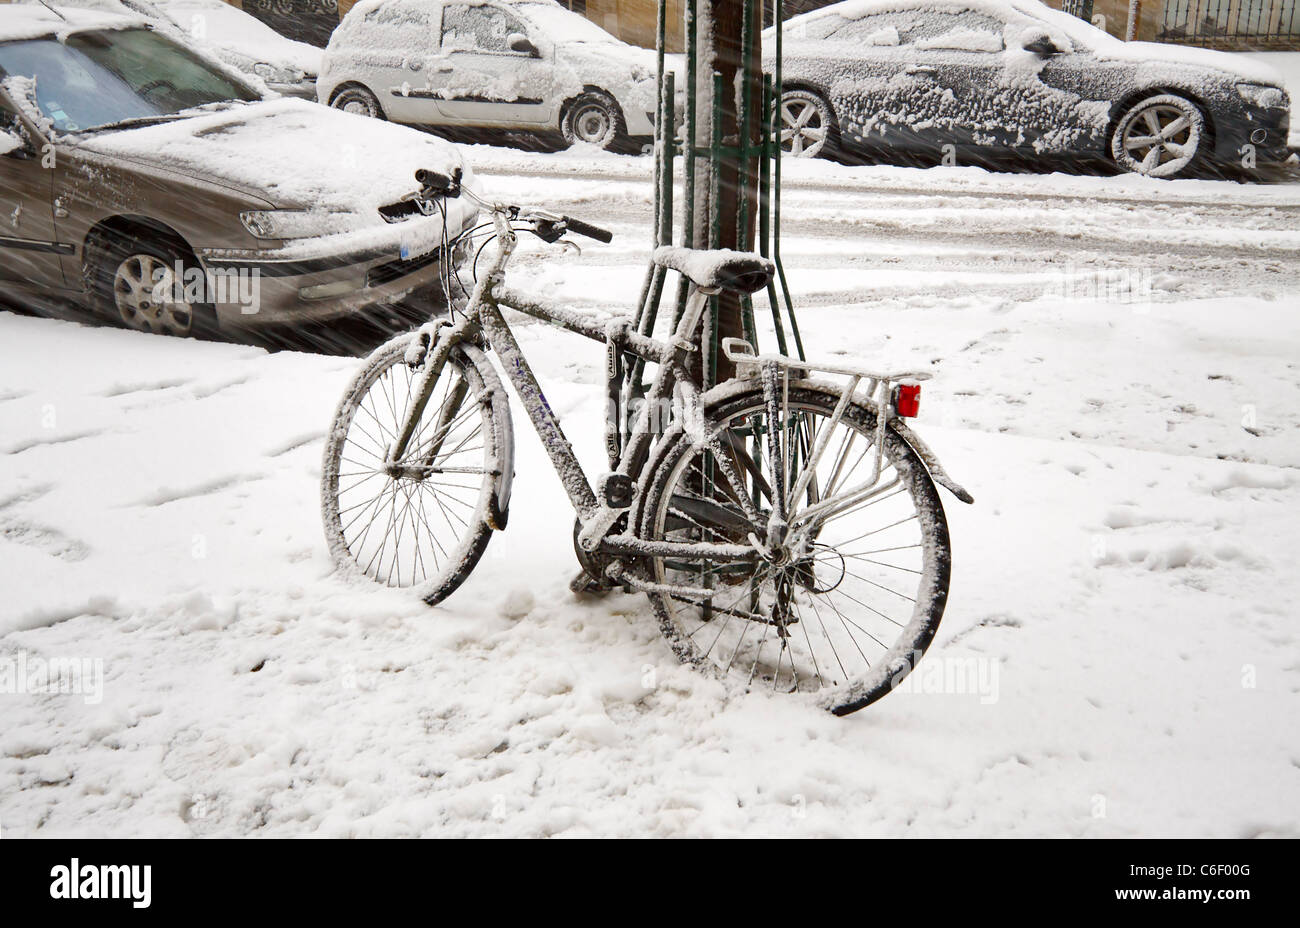 A bicycle and parked cars covered in snow during an early winter snowstorm in Paris, France ROYALTY FREE - Stock Image